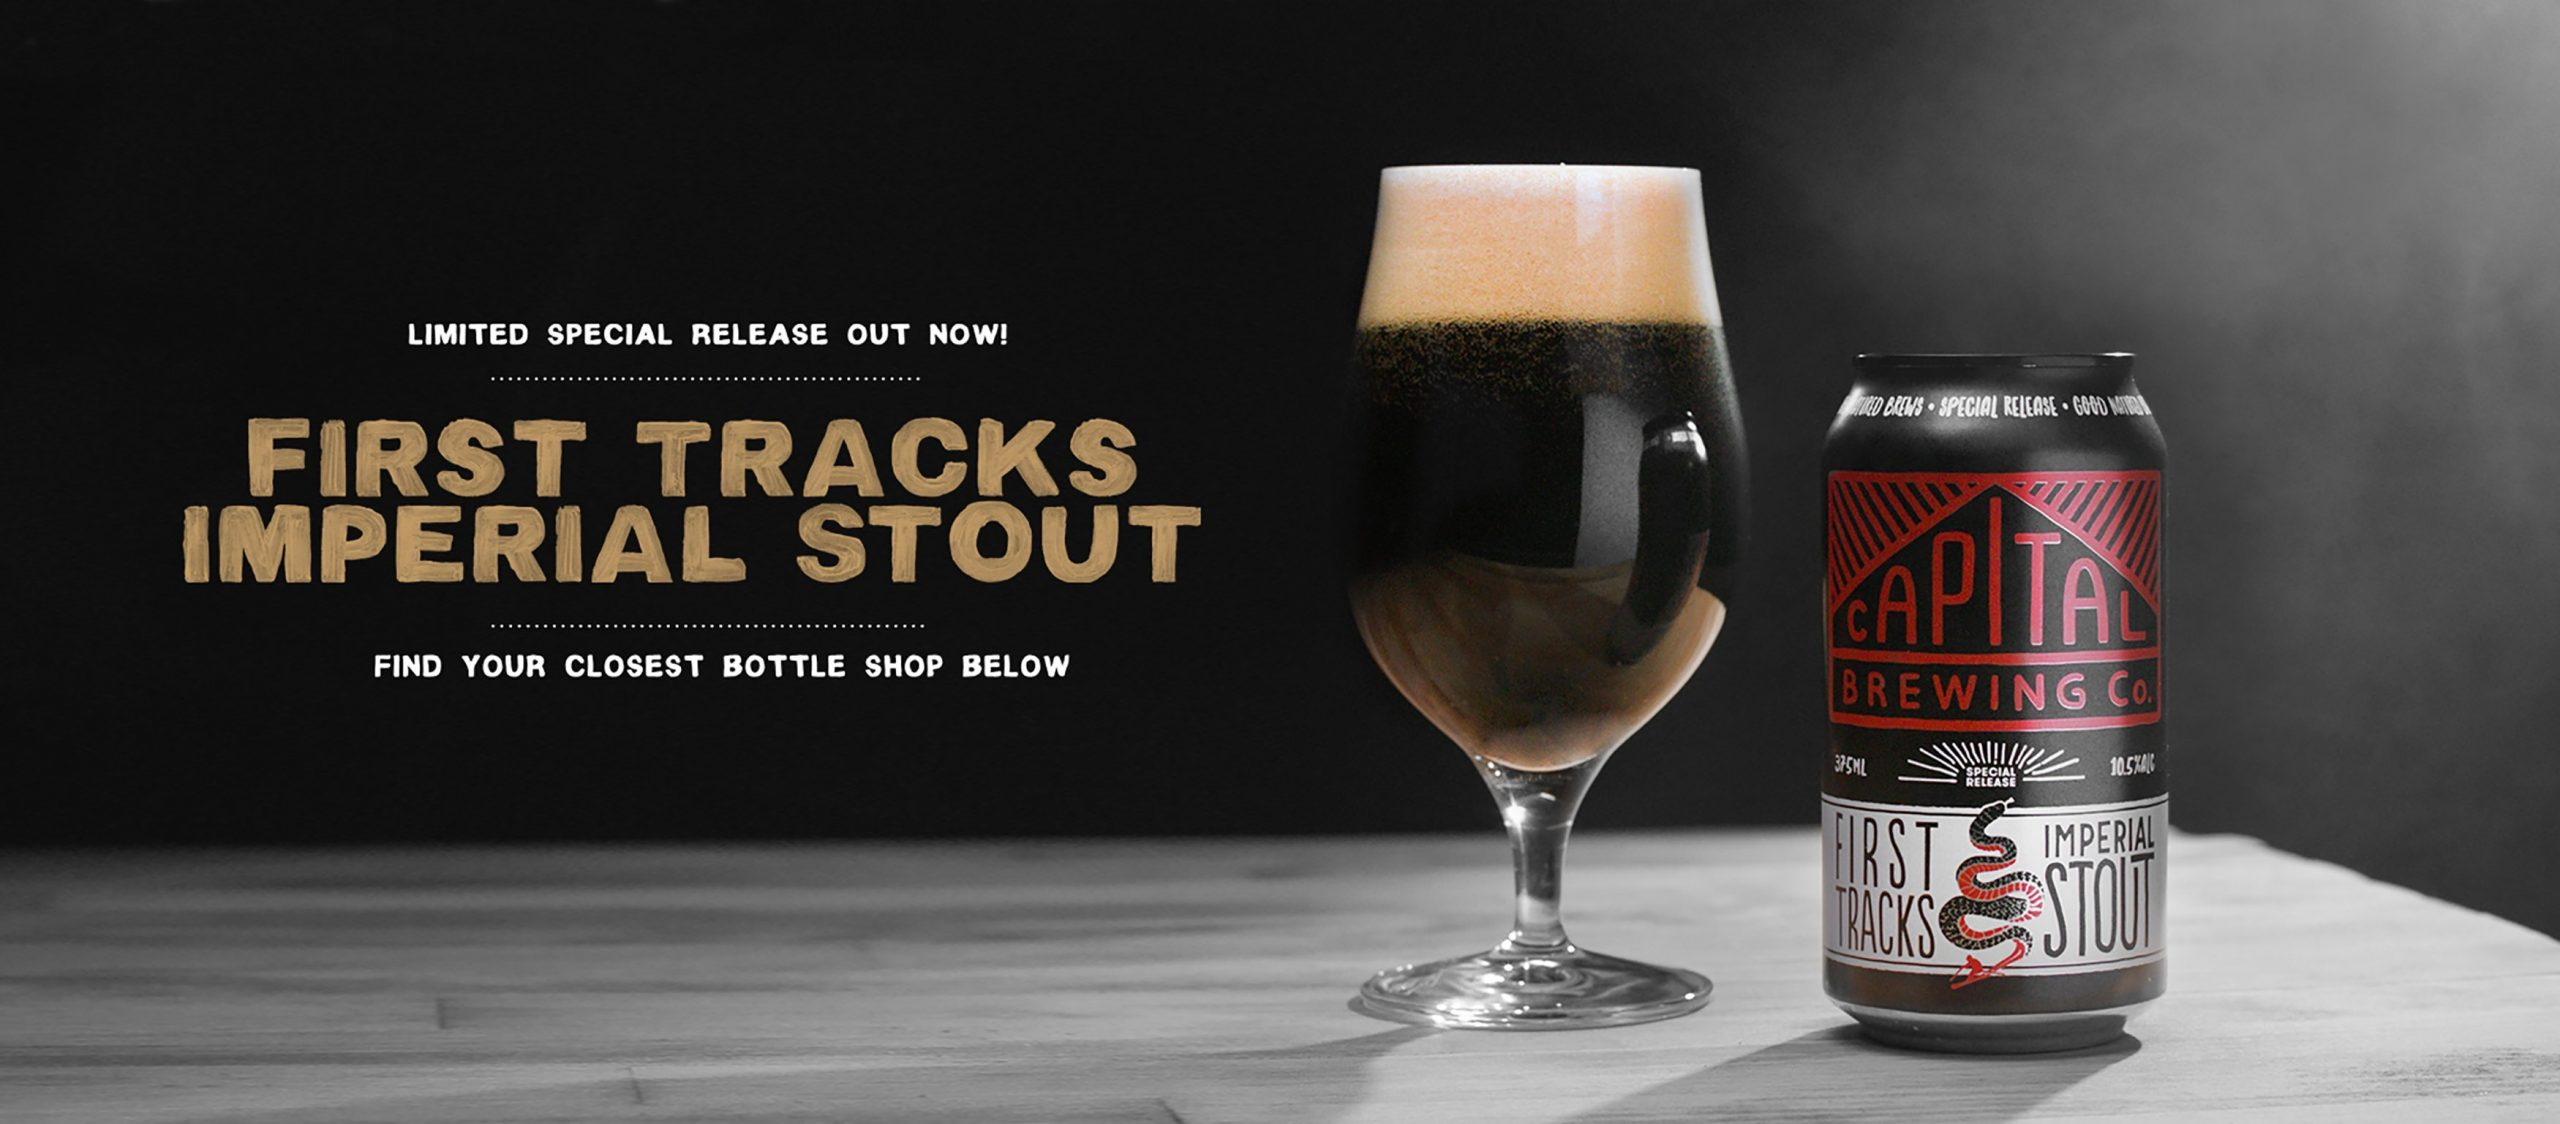 First Tracks Imperial Stour - Find your closest bottle shop below